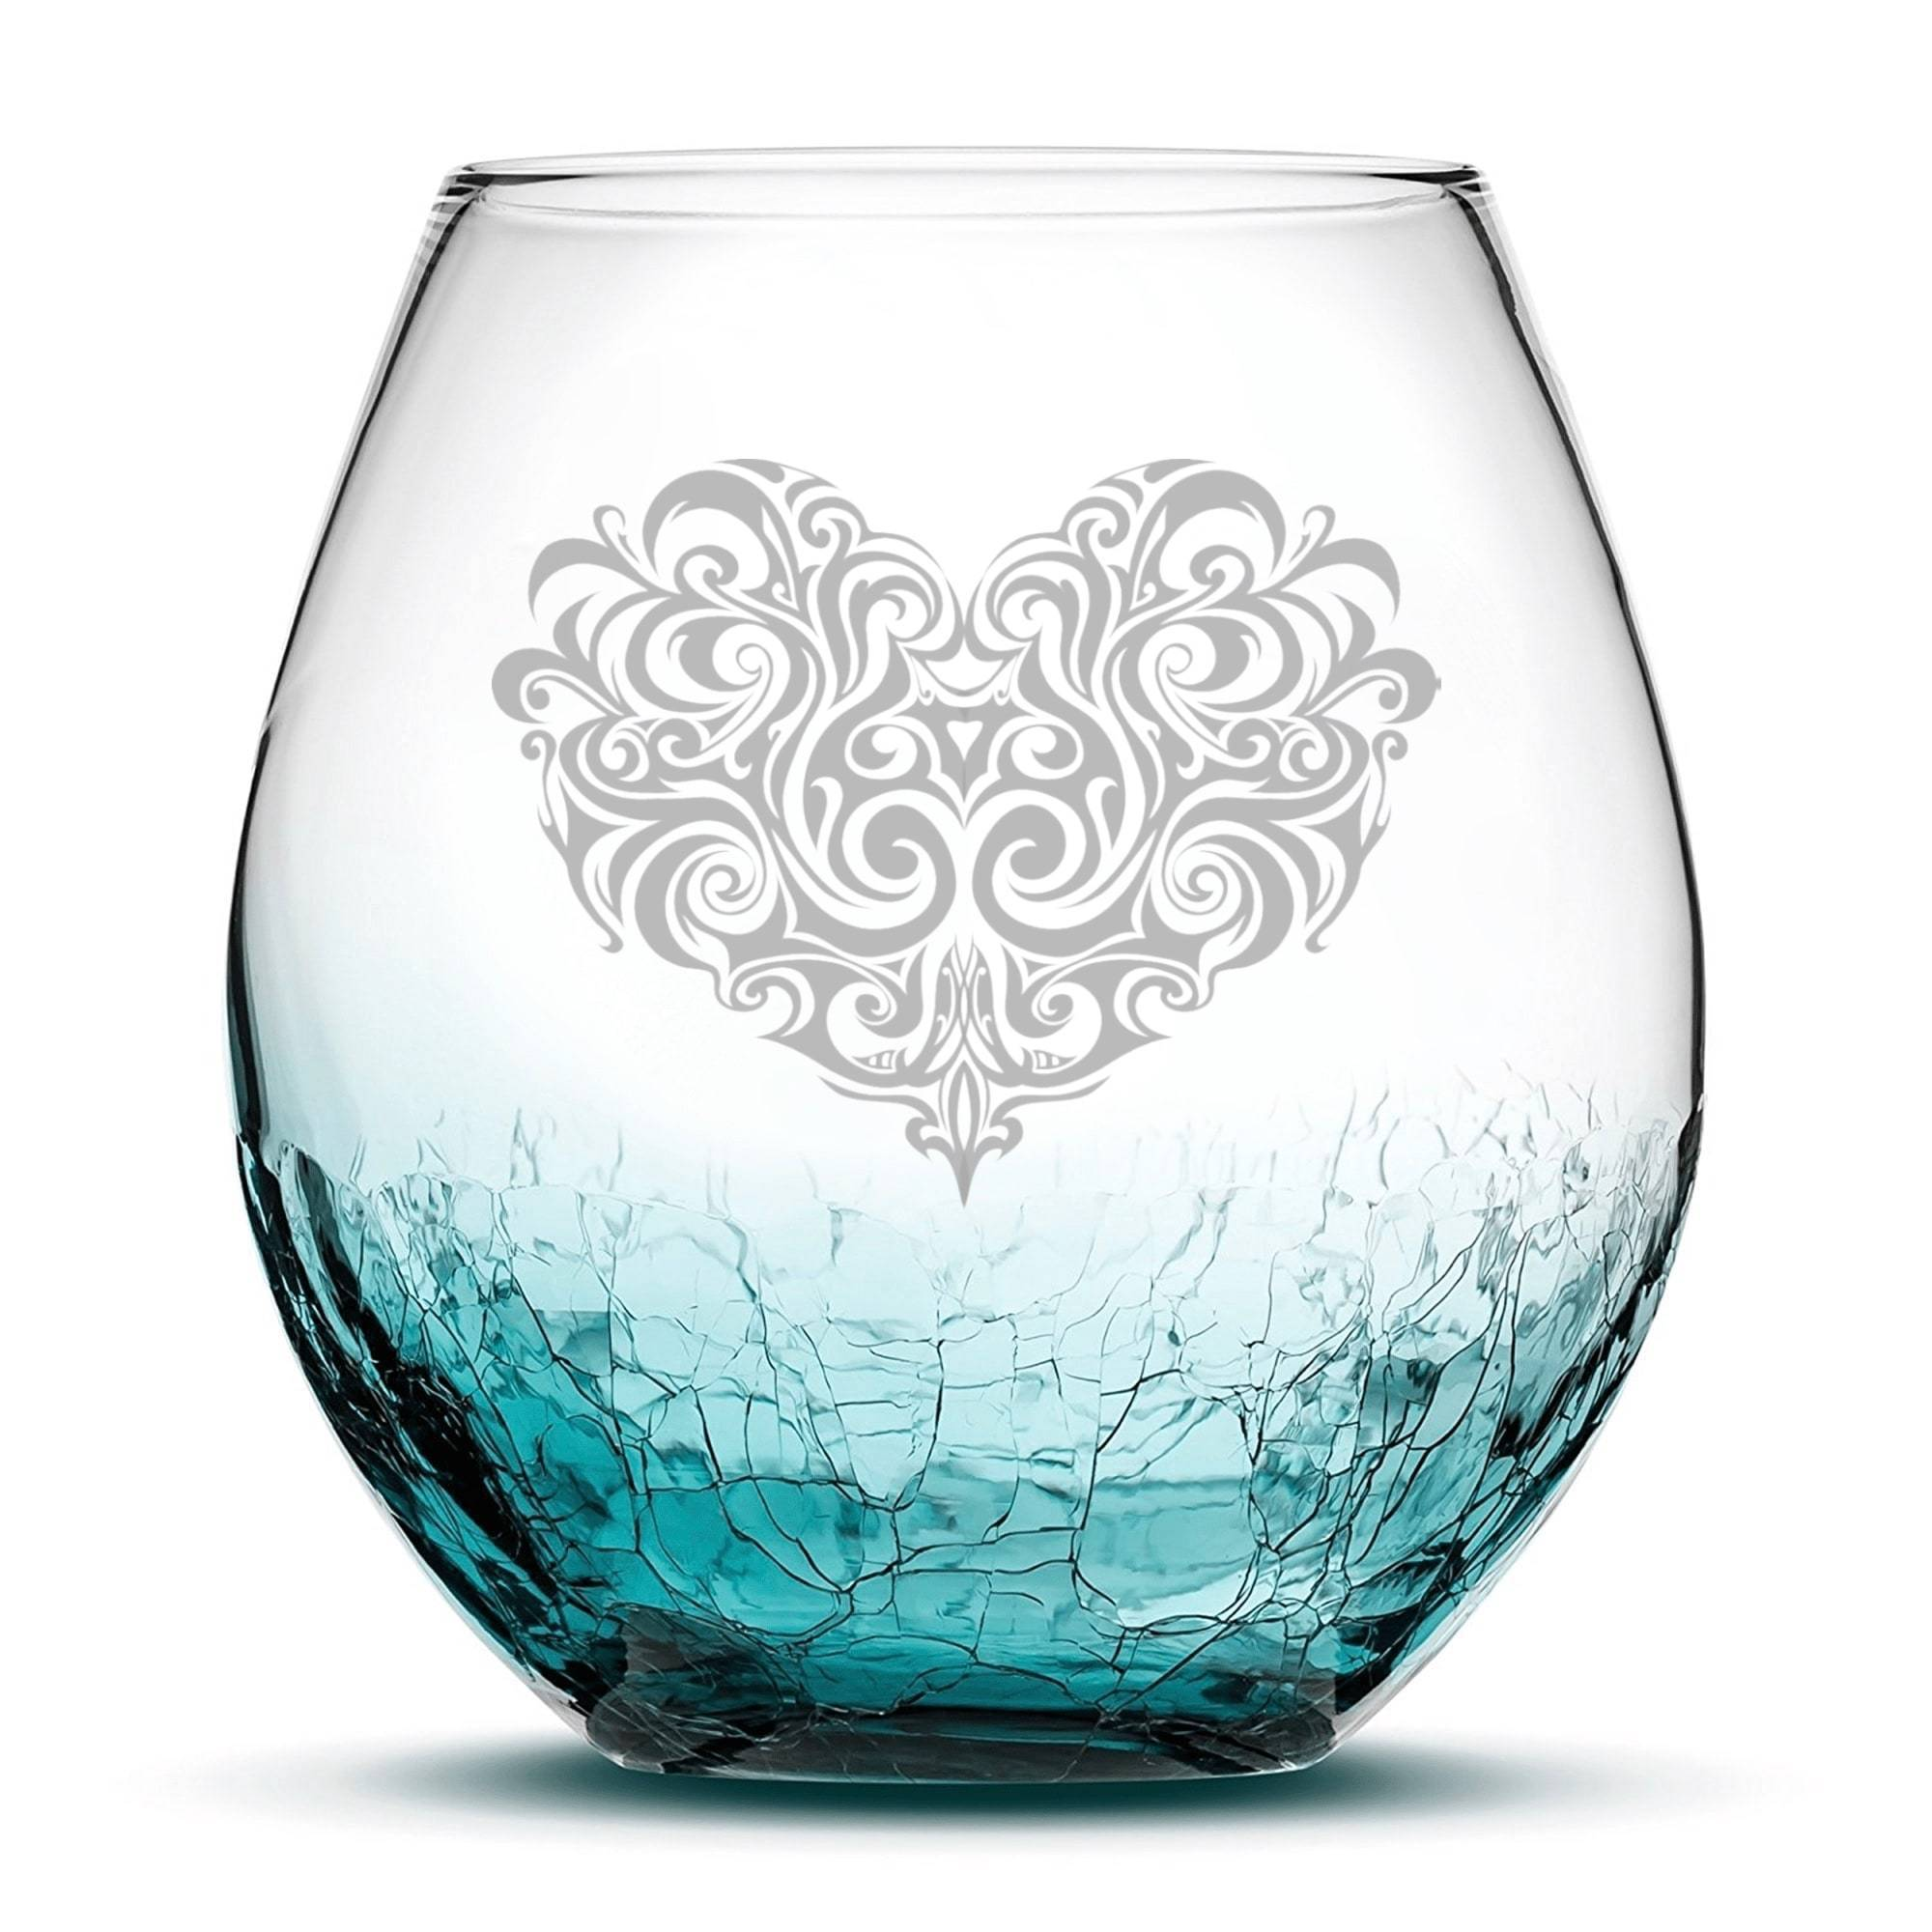 Default Title Crackle Wine Glass with Tribal Heart Design, Teal Integrity Bottles